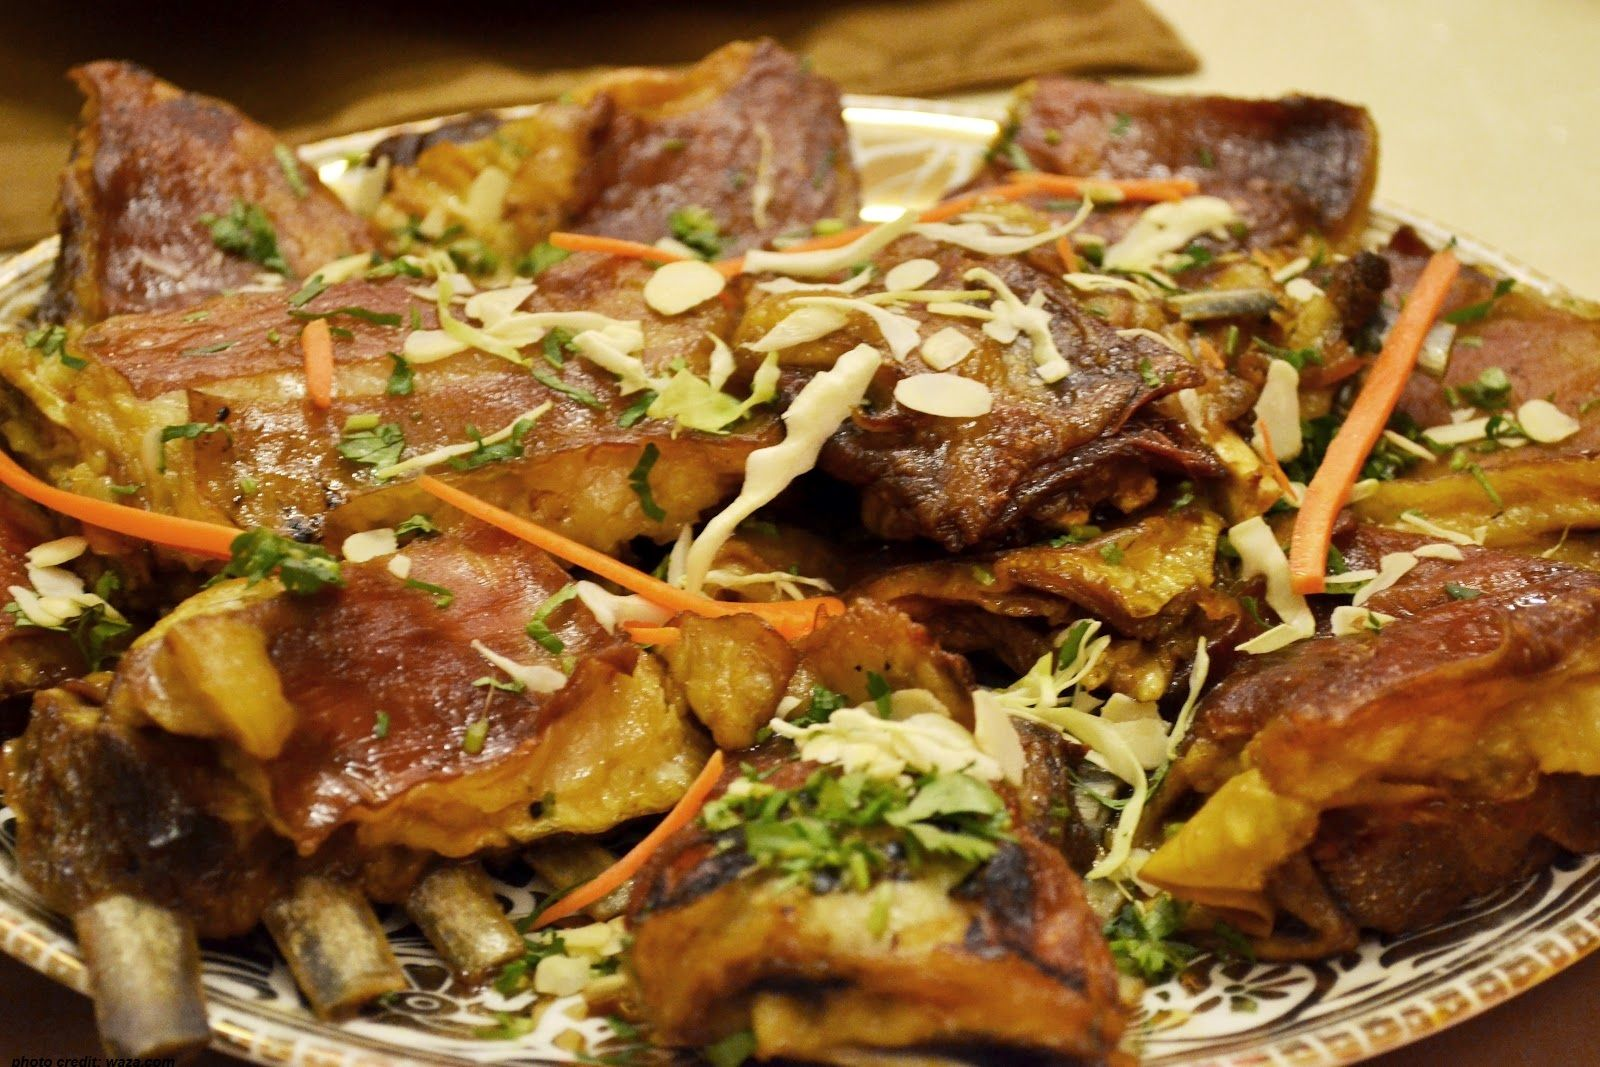 Kashmir food must have dishes of kashmir kashmir cuisine kashmir food must have dishes of kashmir kashmir cuisine kashmir wazwan kashmir forumfinder Gallery